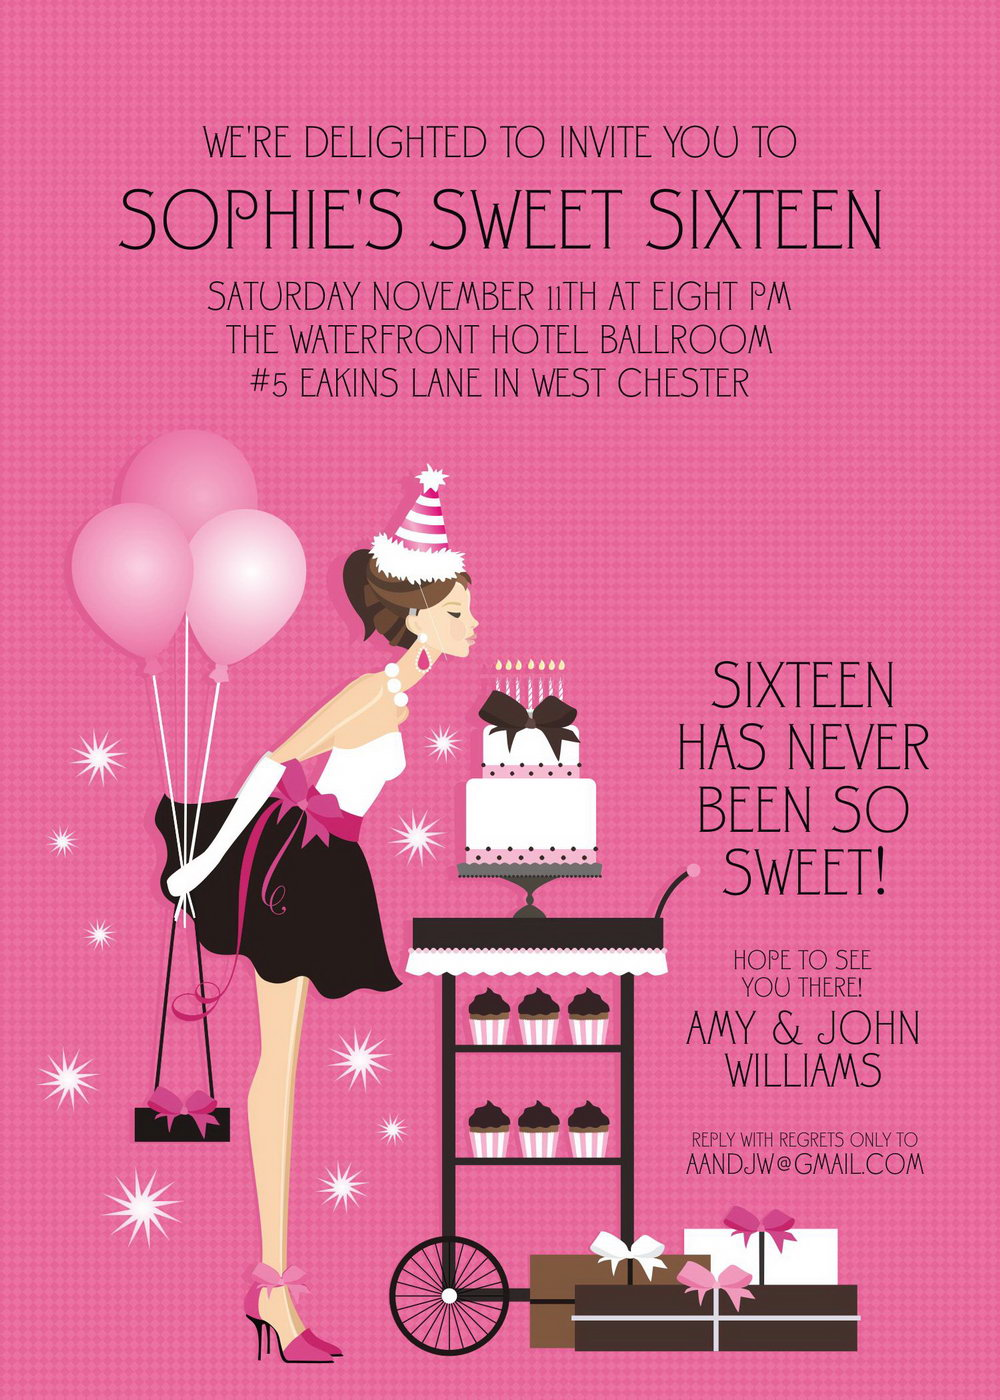 photograph relating to Free Printable Sweet 16 Invitations titled Cost-free Printable Lovable 16 Invitation Templates - Templates